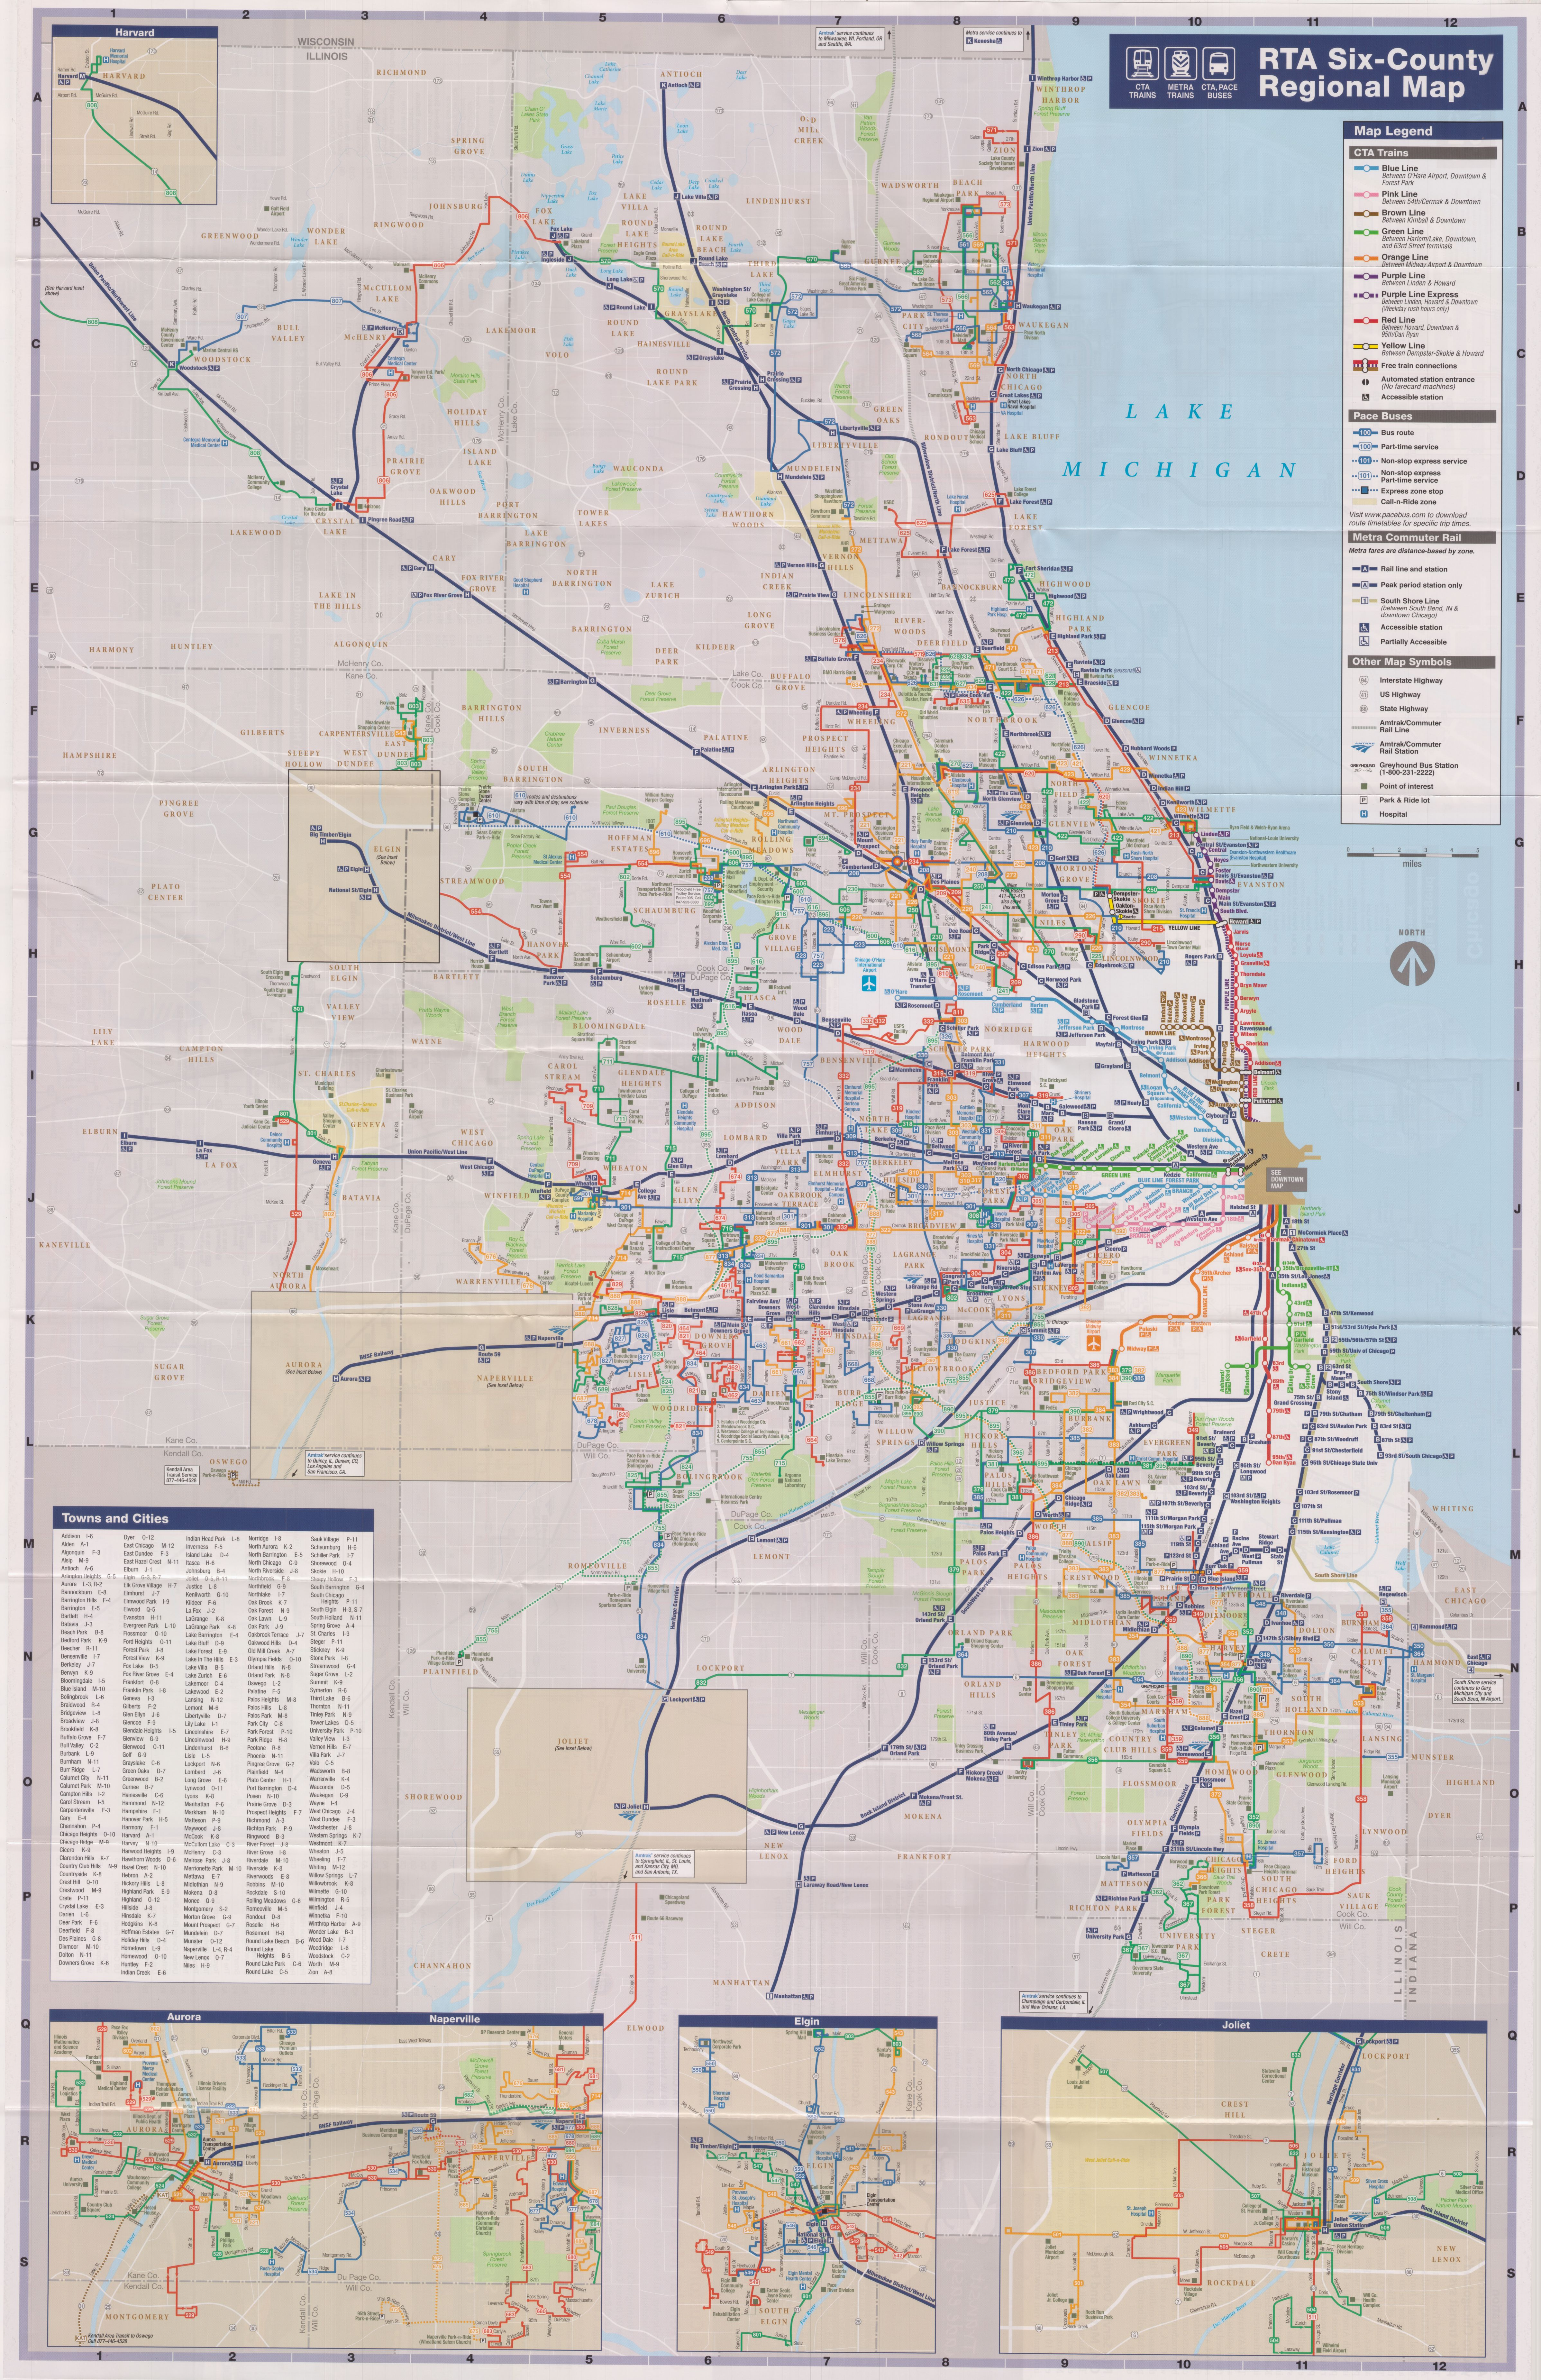 Illinois Railway Museum's CTA History Website on chicago map printable, chicago map scale, chicago sites and attractions map, chicago neighborhoods, chicago subway map, chicago illinois, chicago sightseeing map, chicago magnificent mile map, chicago attractions downtown, chicago tourist attractions, chicago area attraction map, chicago loop, chicago points of interest map, chicago road map.pdf, chicago visitors map, chicago highlights map, chicago street map, chicago and surrounding suburbs maps, chicago tourist map.pdf, nyc bike map pdf,